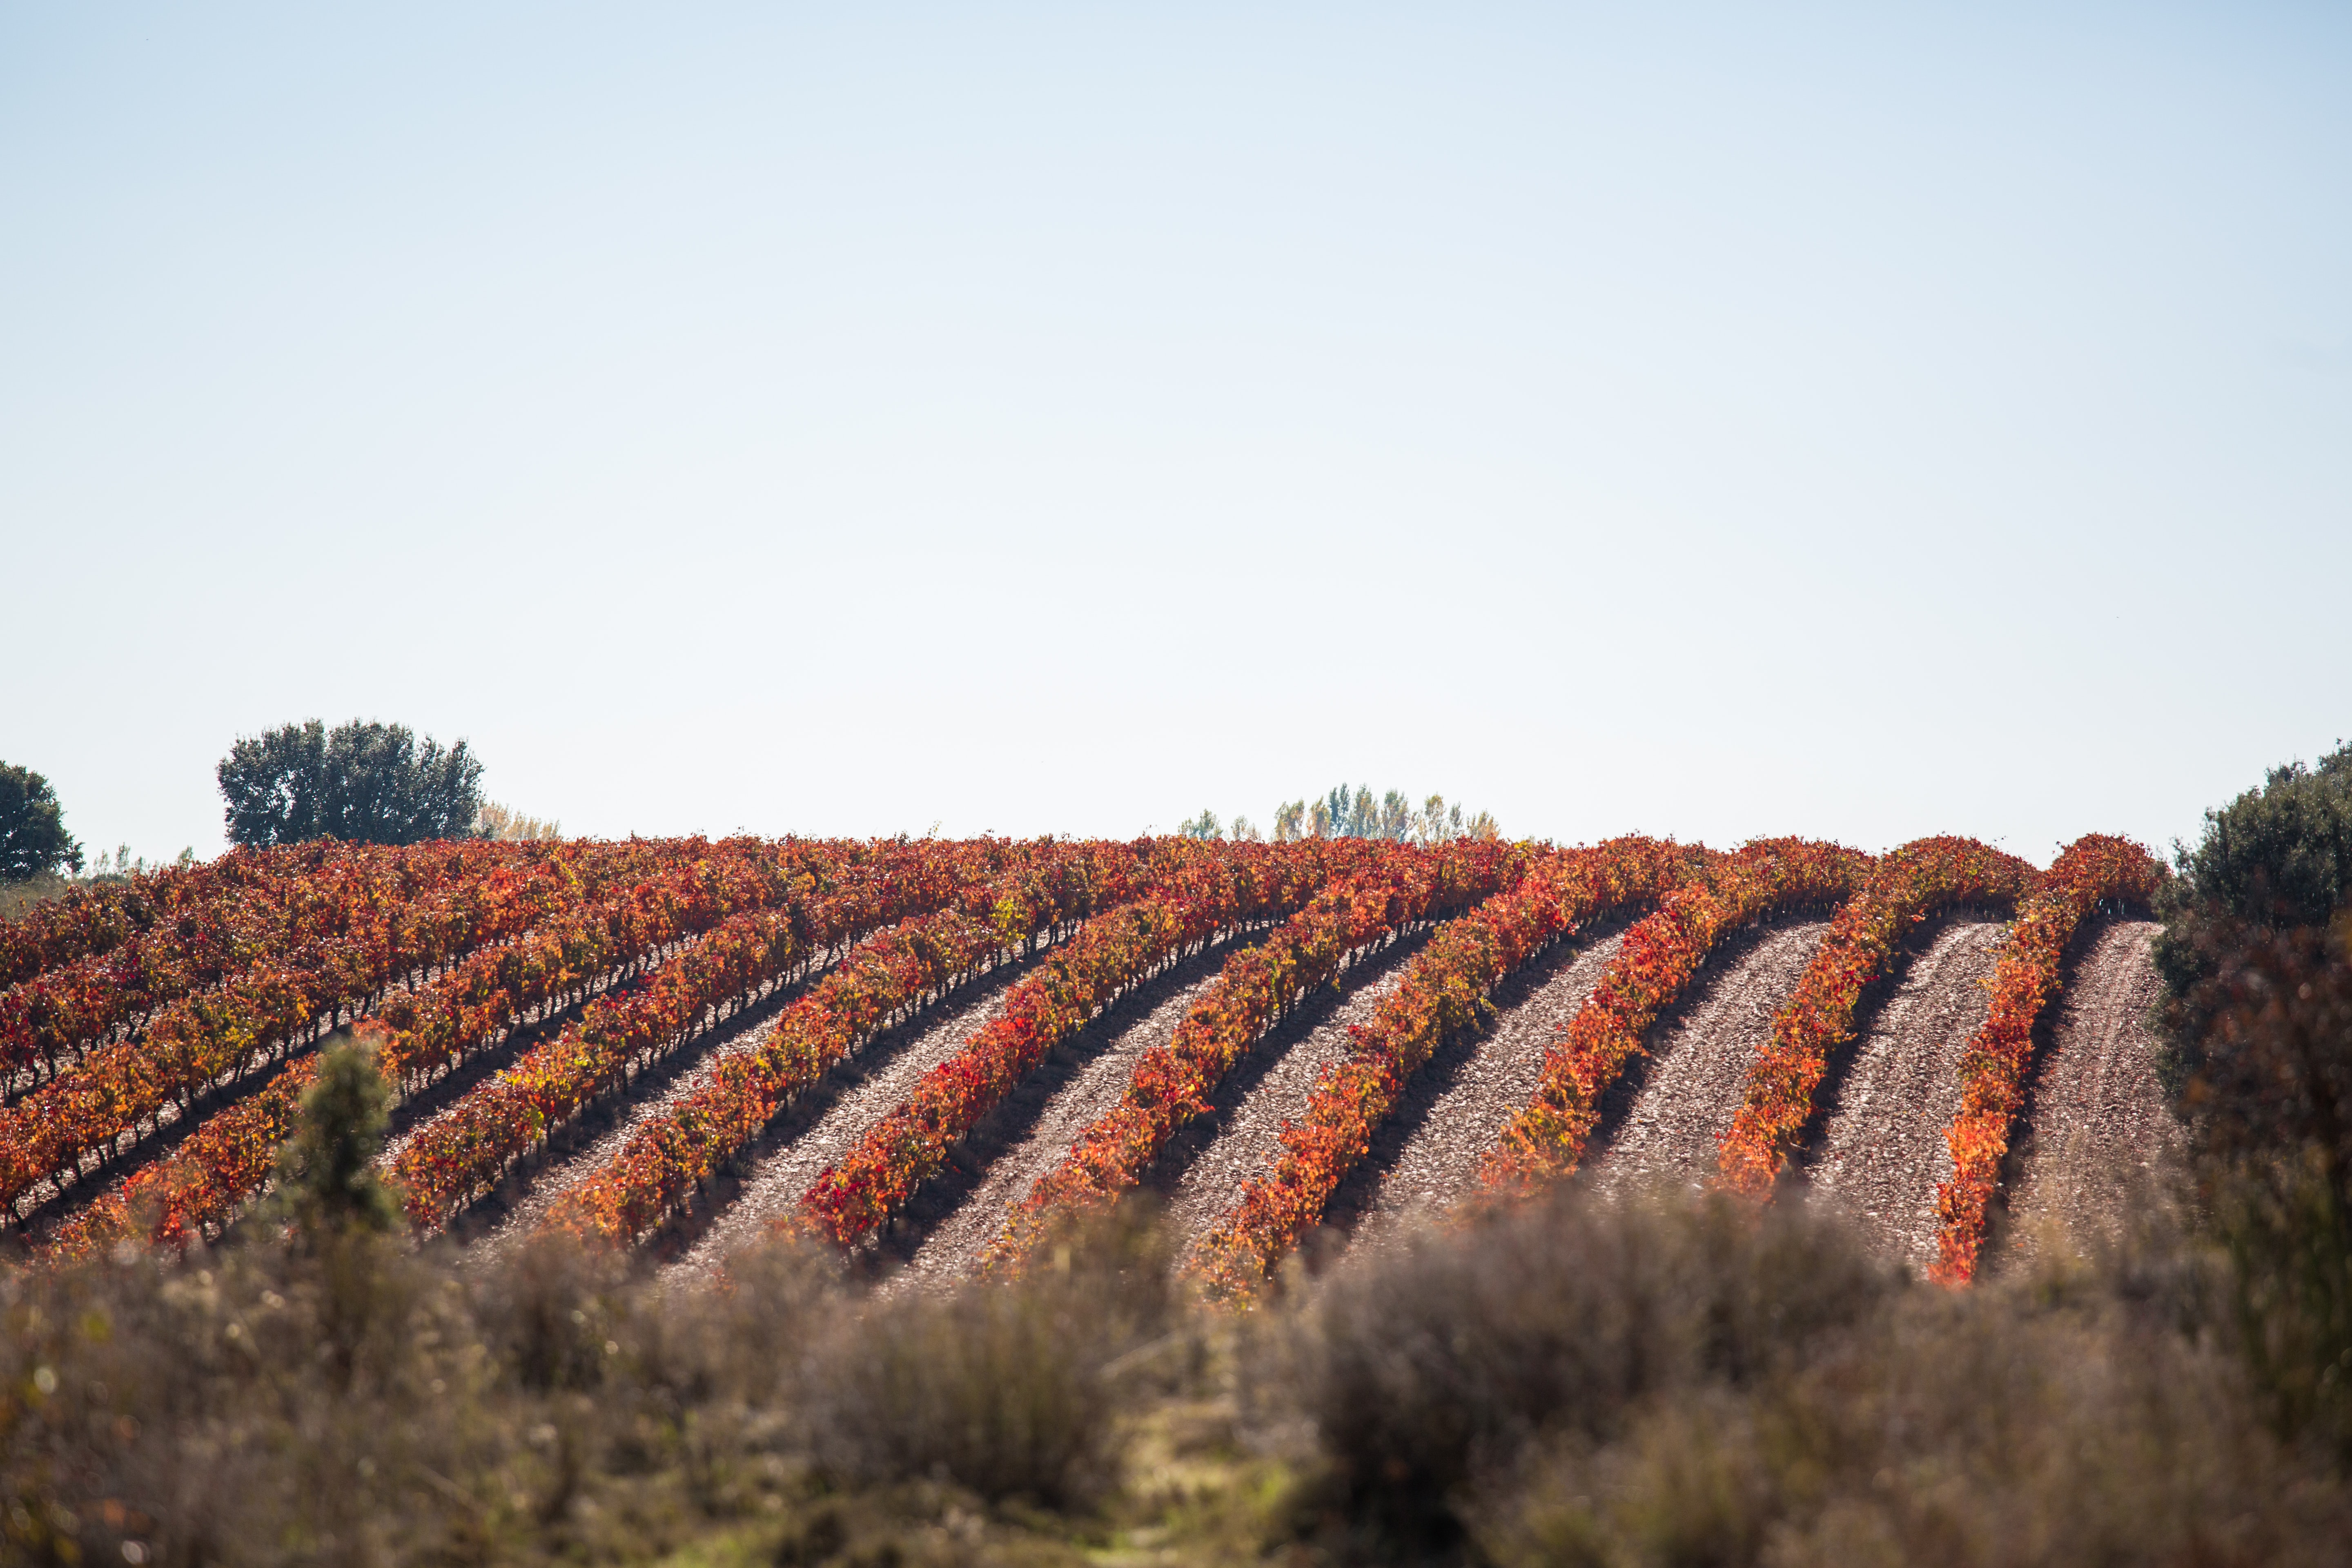 A scenic landscape with rows of short orange-leaved trees in an orchard